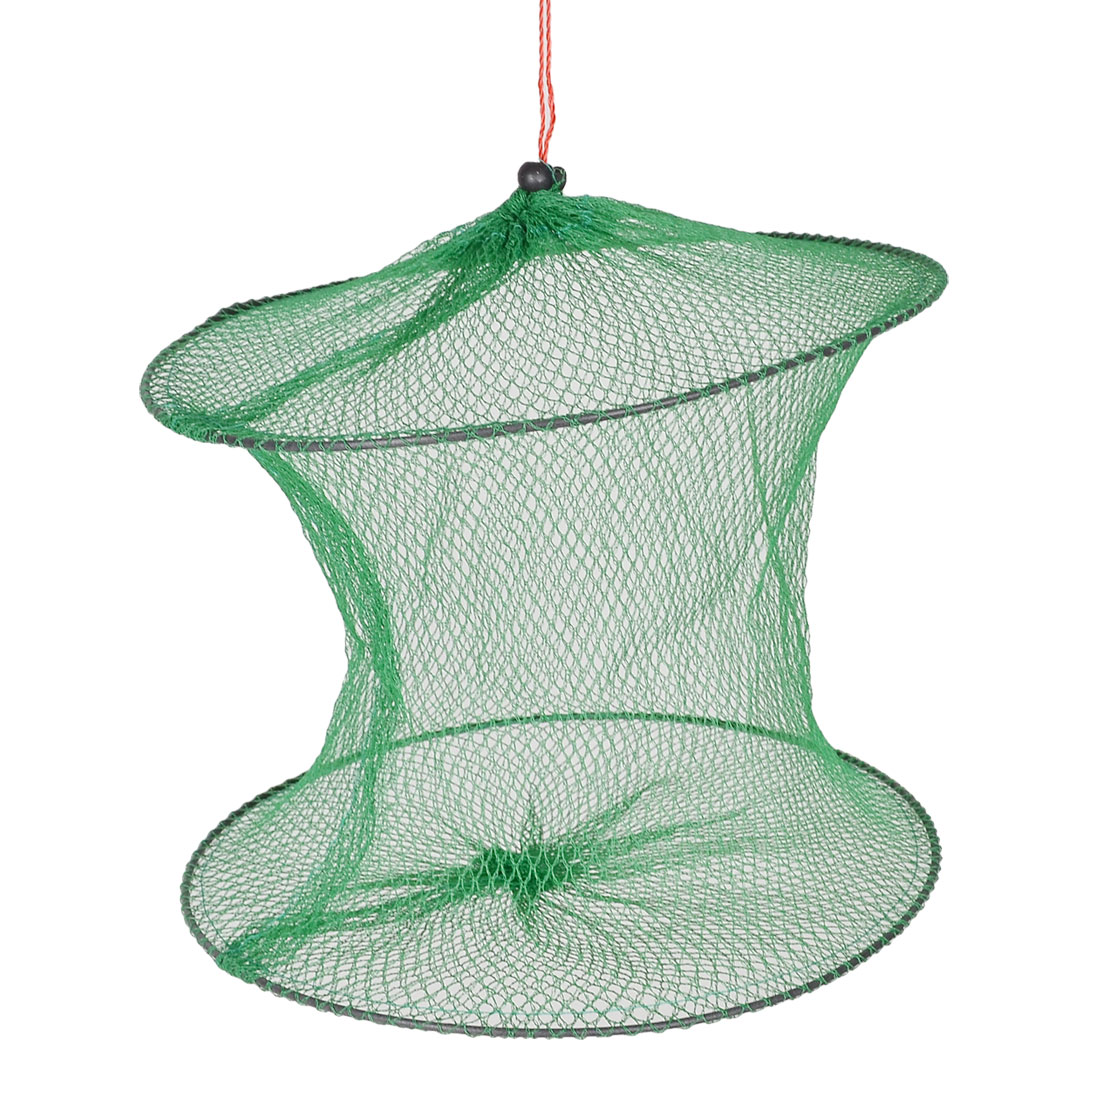 Fish 2 Layers Mesh Lobster Crab Minnow Keep Fishing Net